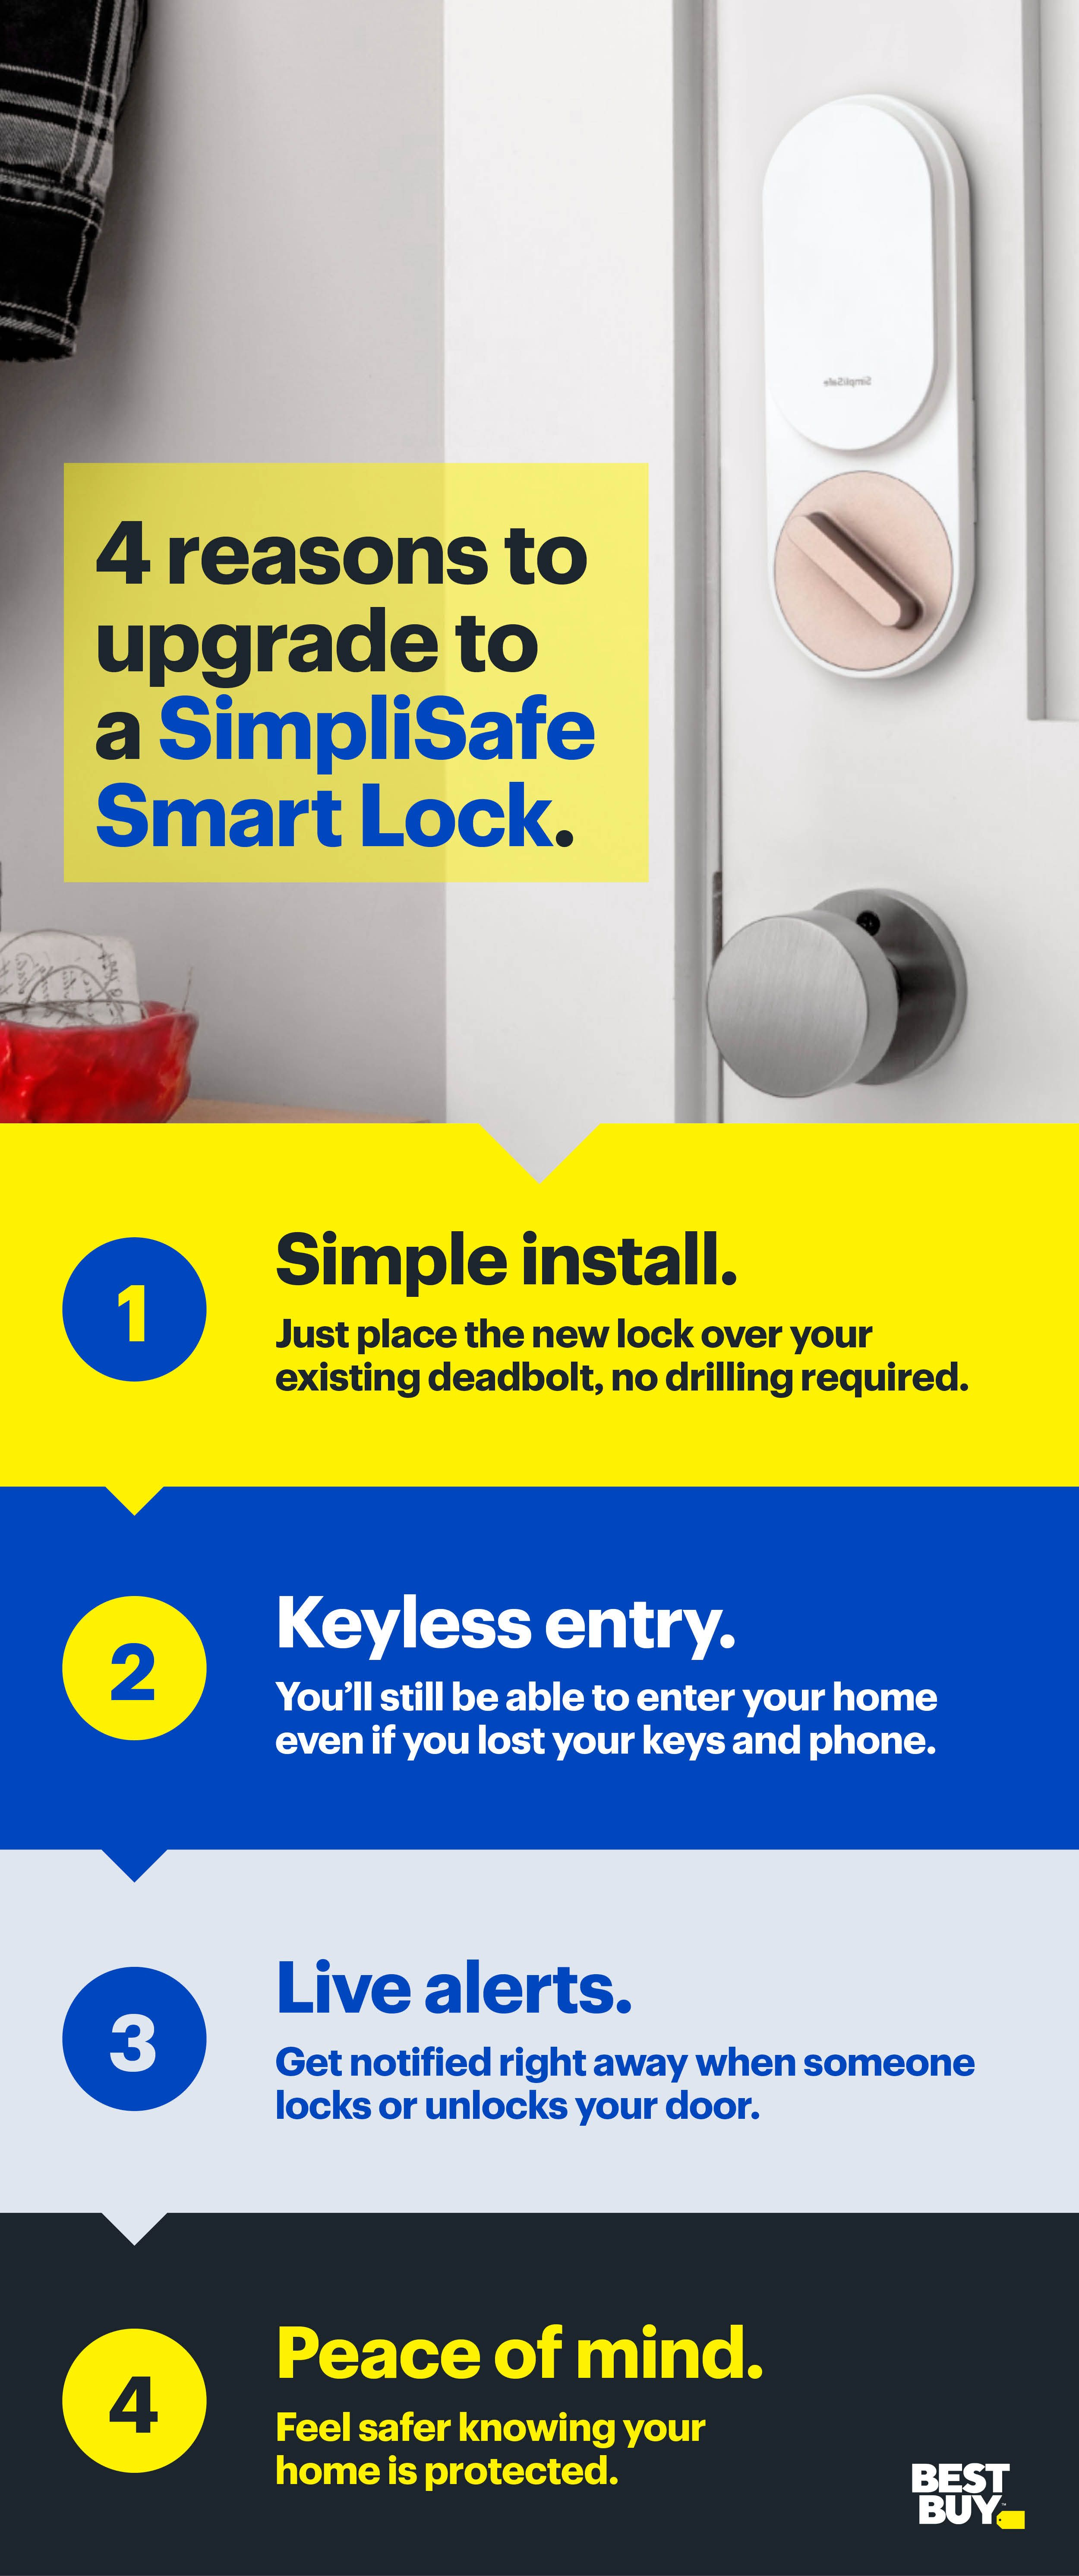 The Simplisafe Smart Lock Is A Quick And Easy Way To Help Make Your Home Security Smarter Home Security Tips Simplisafe Smart Lock